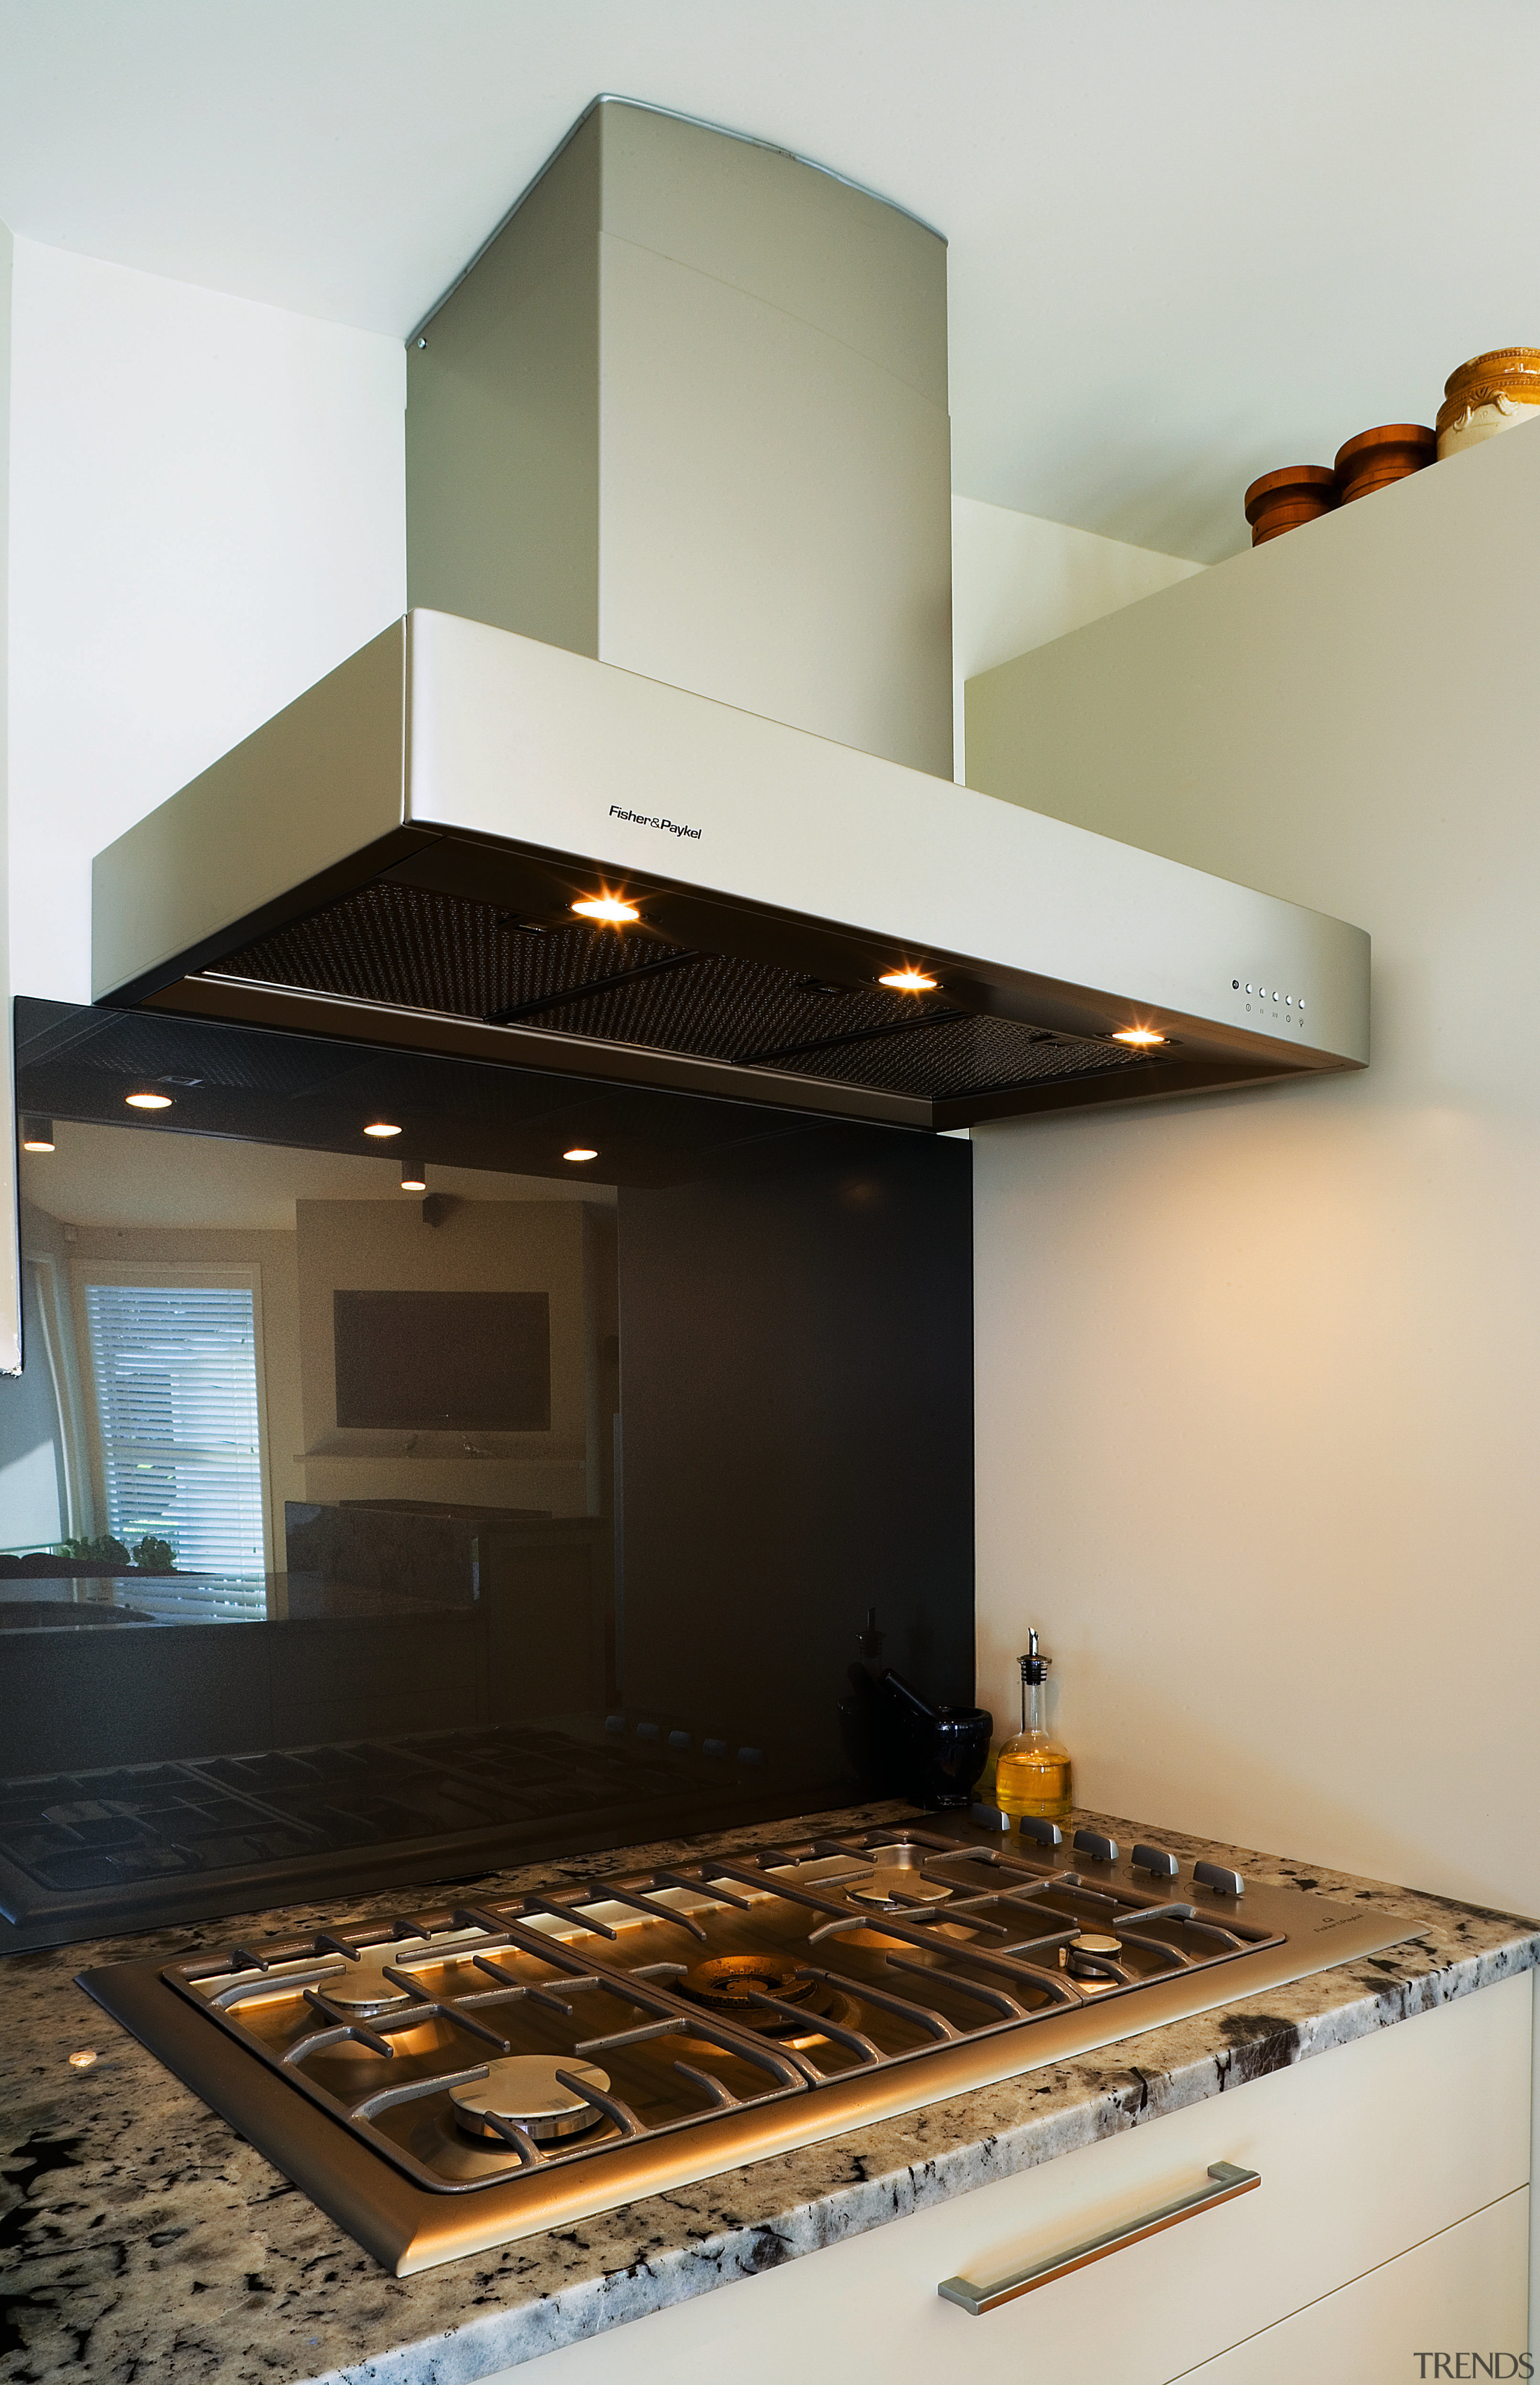 A view of a home using Fisher & ceiling, countertop, interior design, kitchen, black